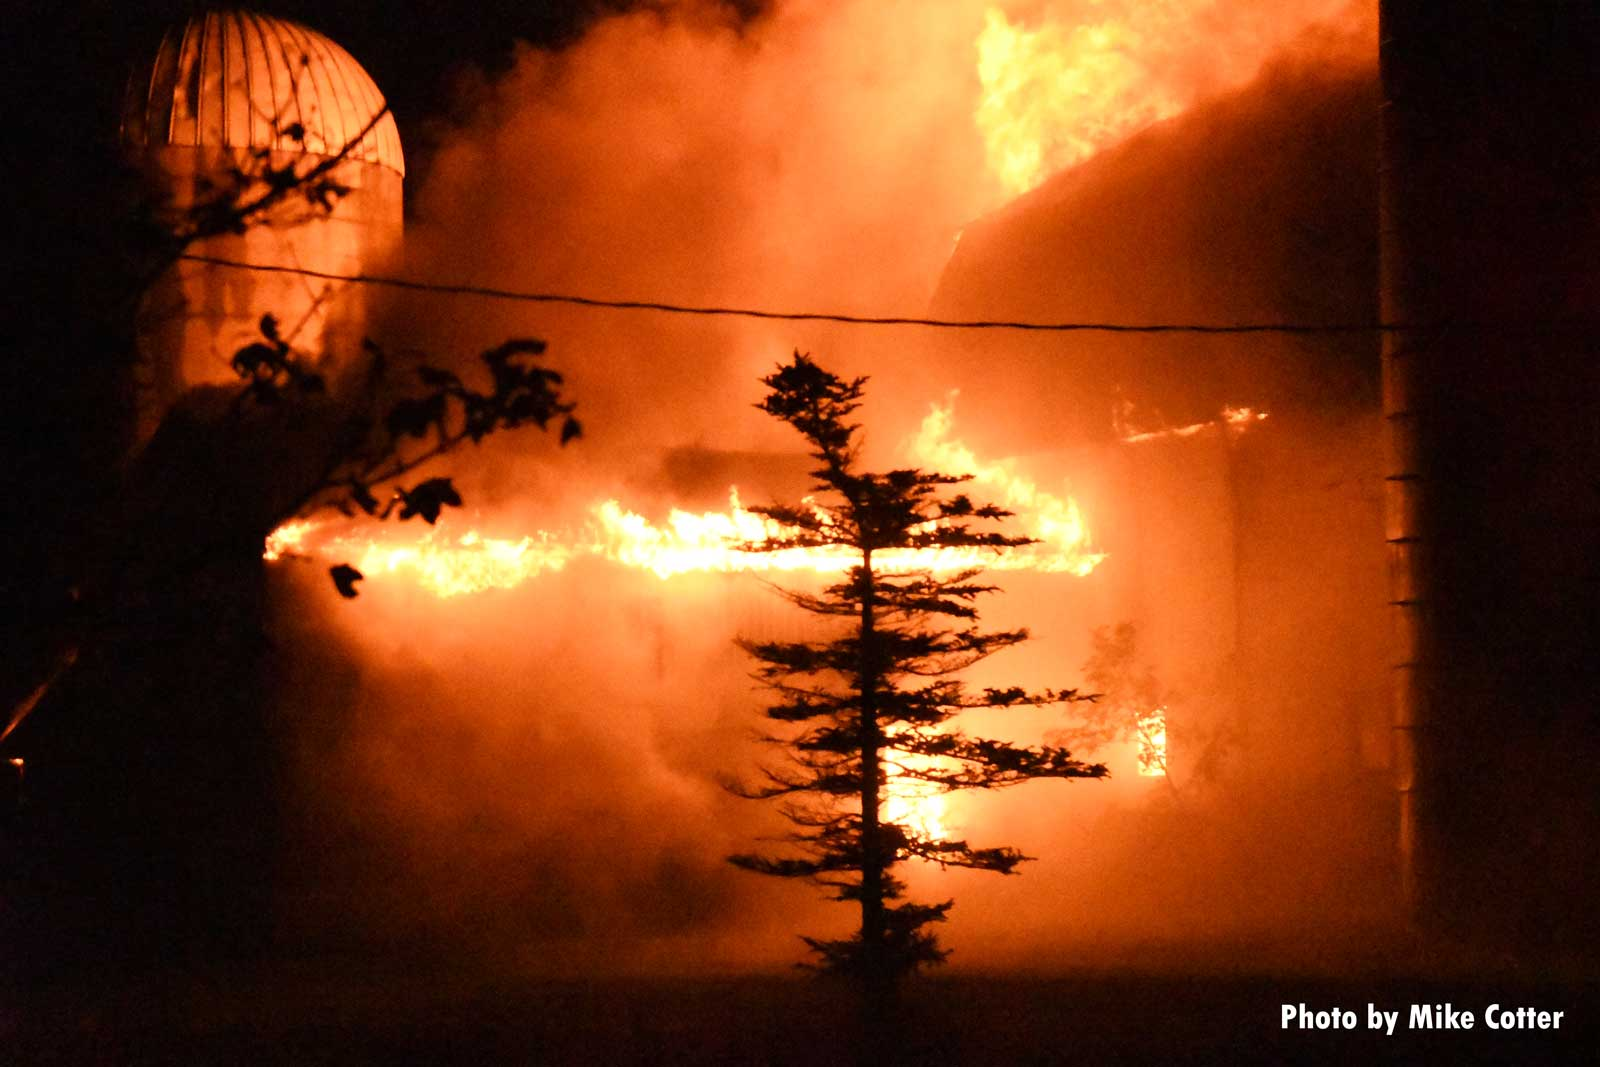 Wisconsin firefighters responded to this raging fire in a barn